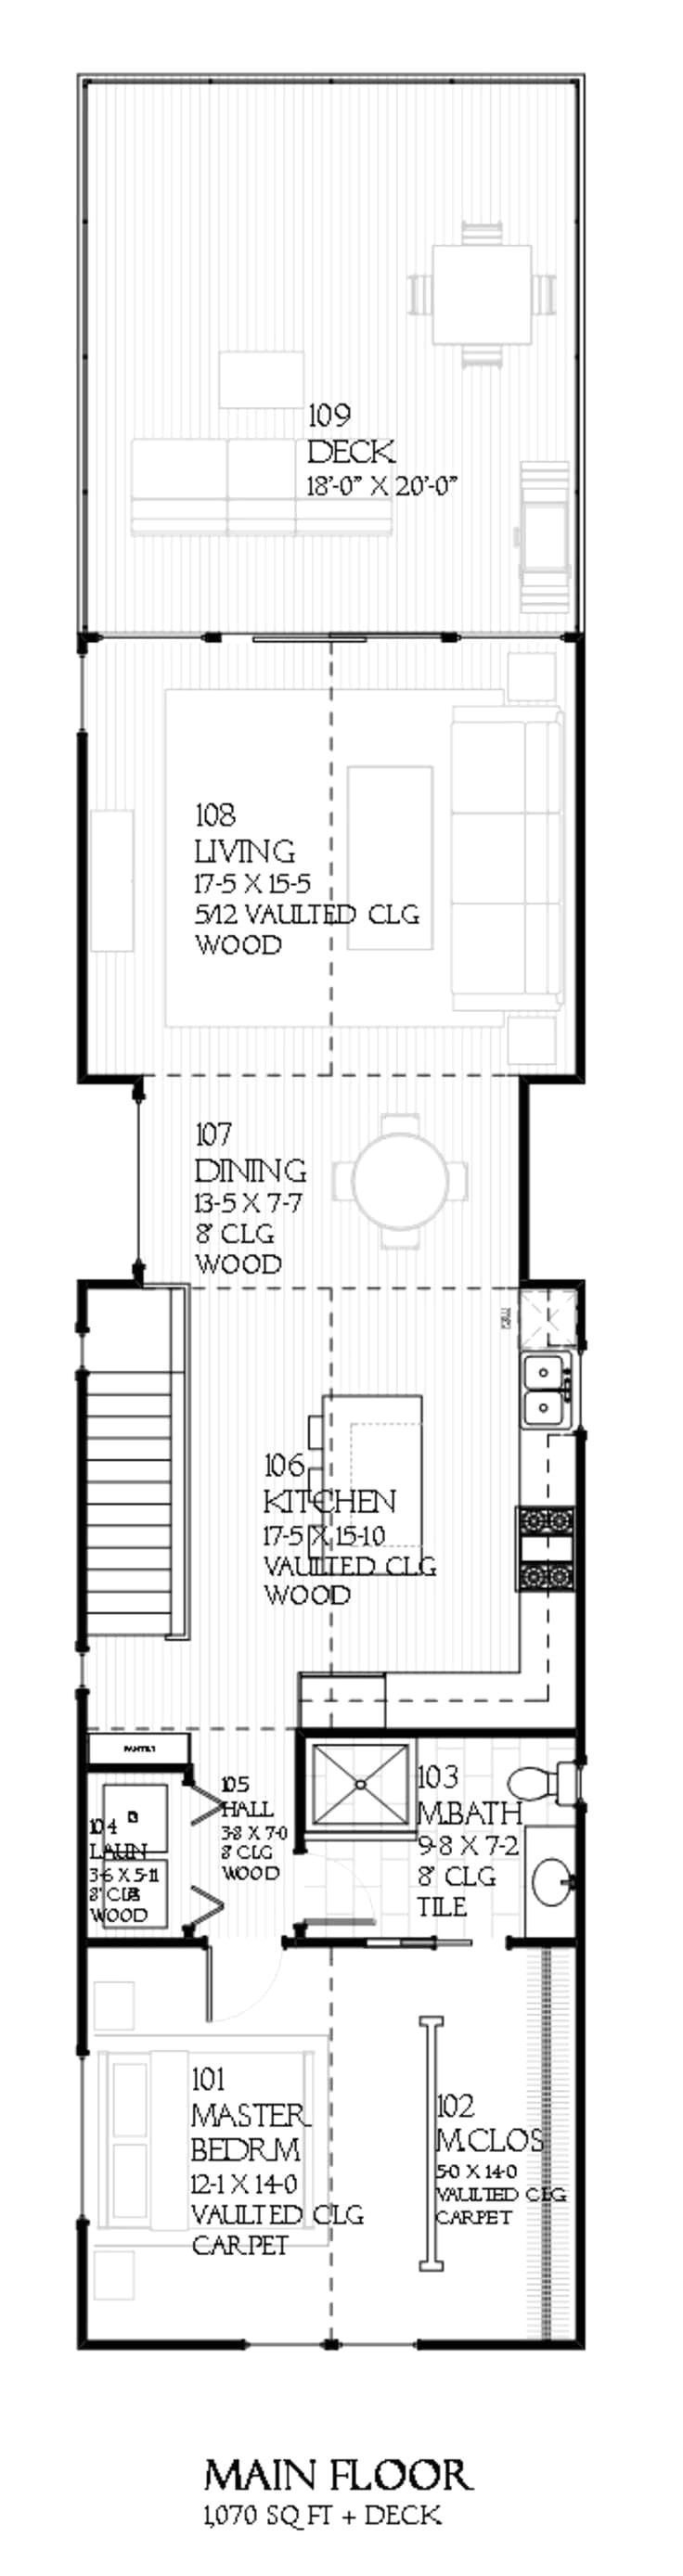 house plans for wide but shallow lots